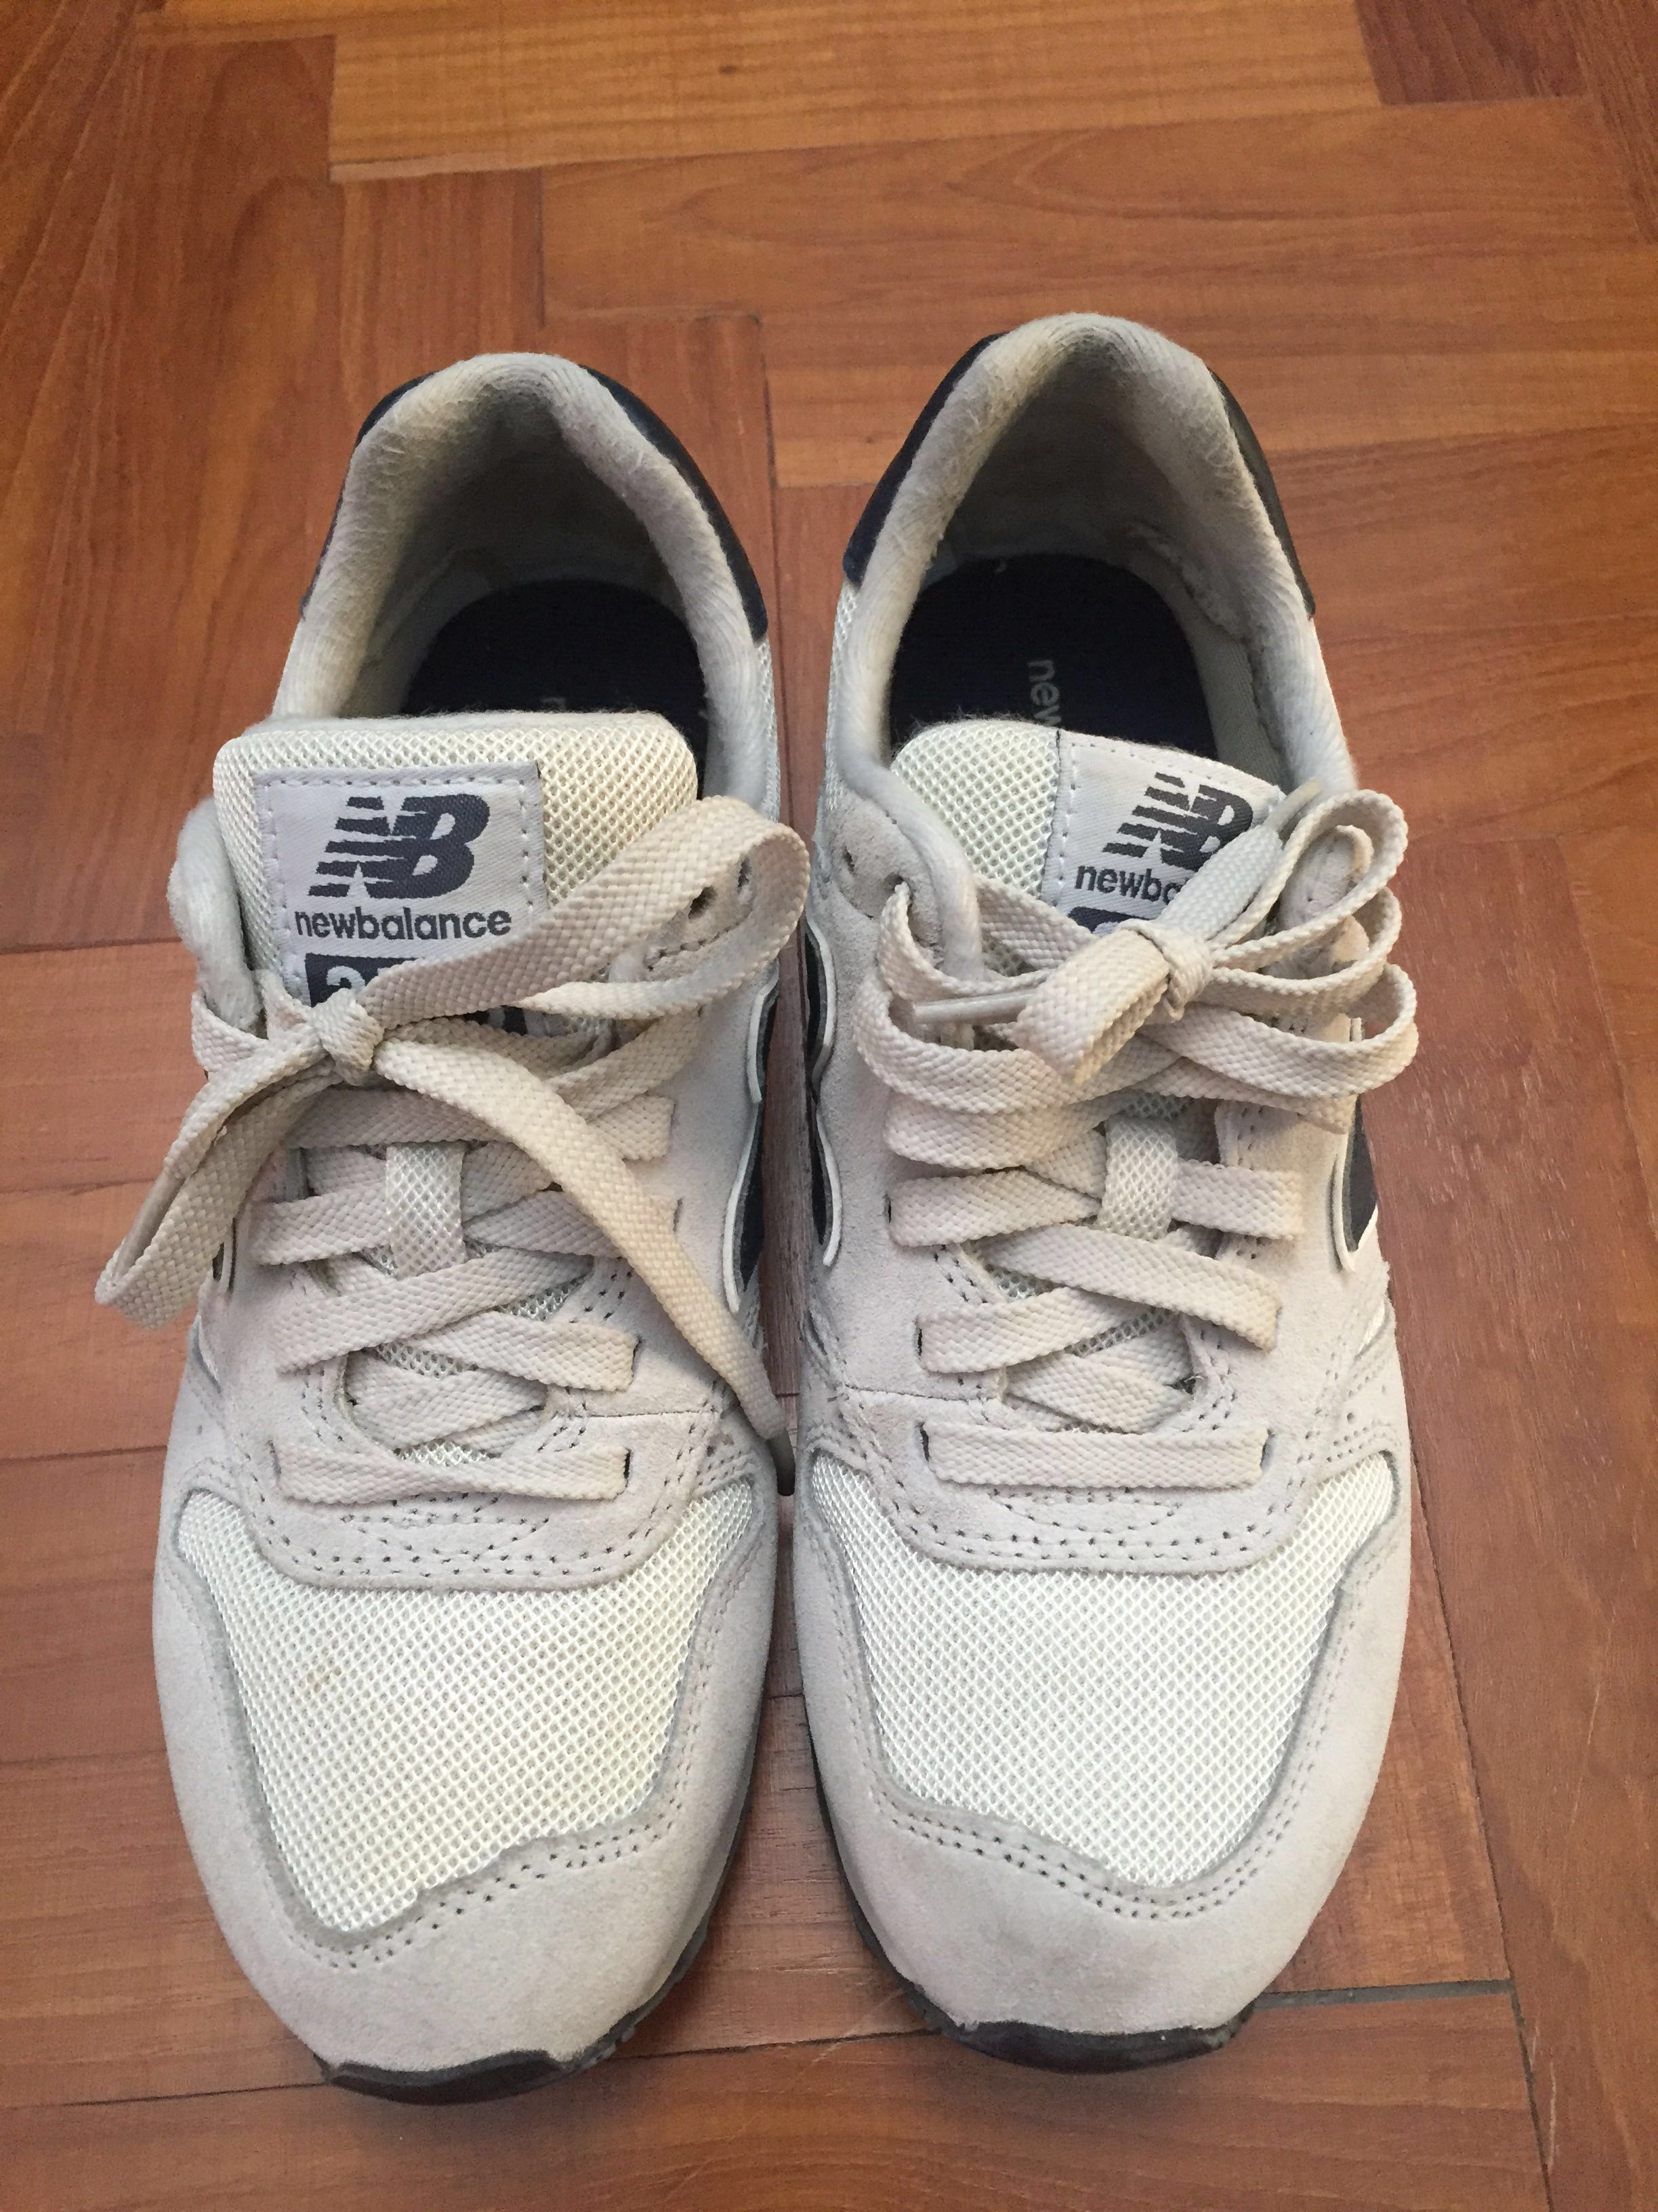 promo code 54299 a2a27 New balance 373 off-white with navy blue, Women's Fashion ...